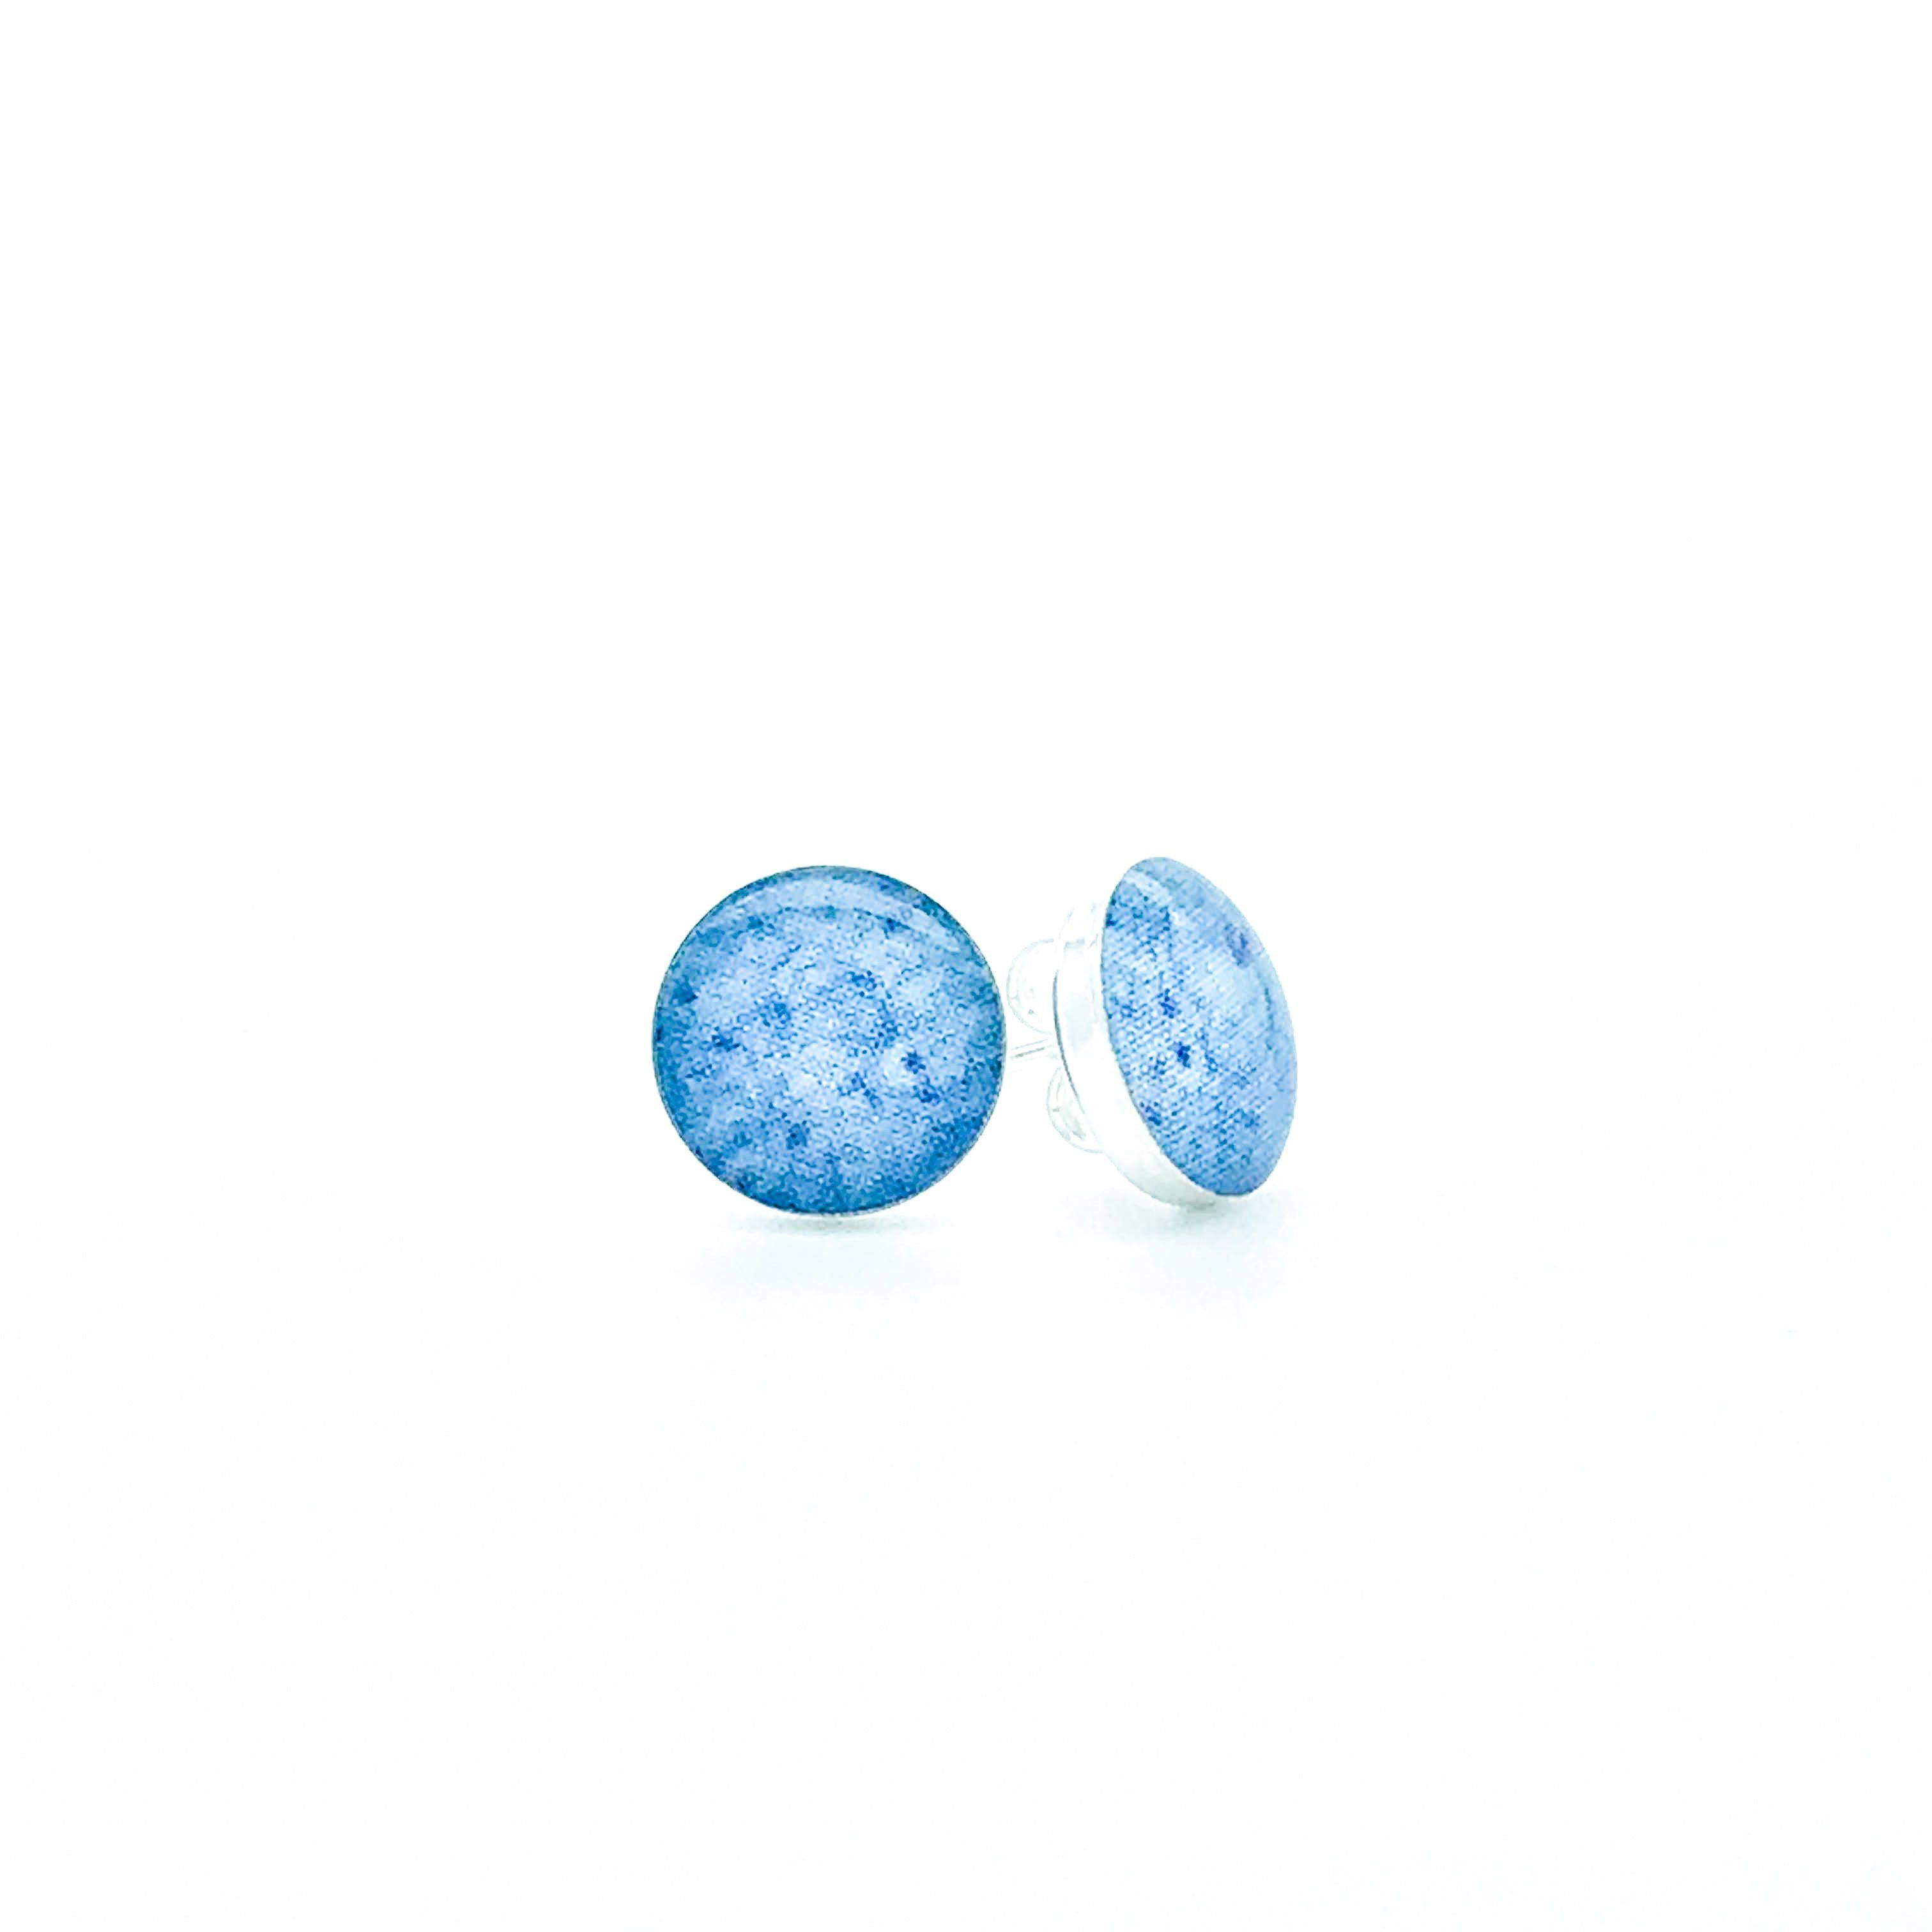 sterling silver studs with BLUE images set in resin post earrings